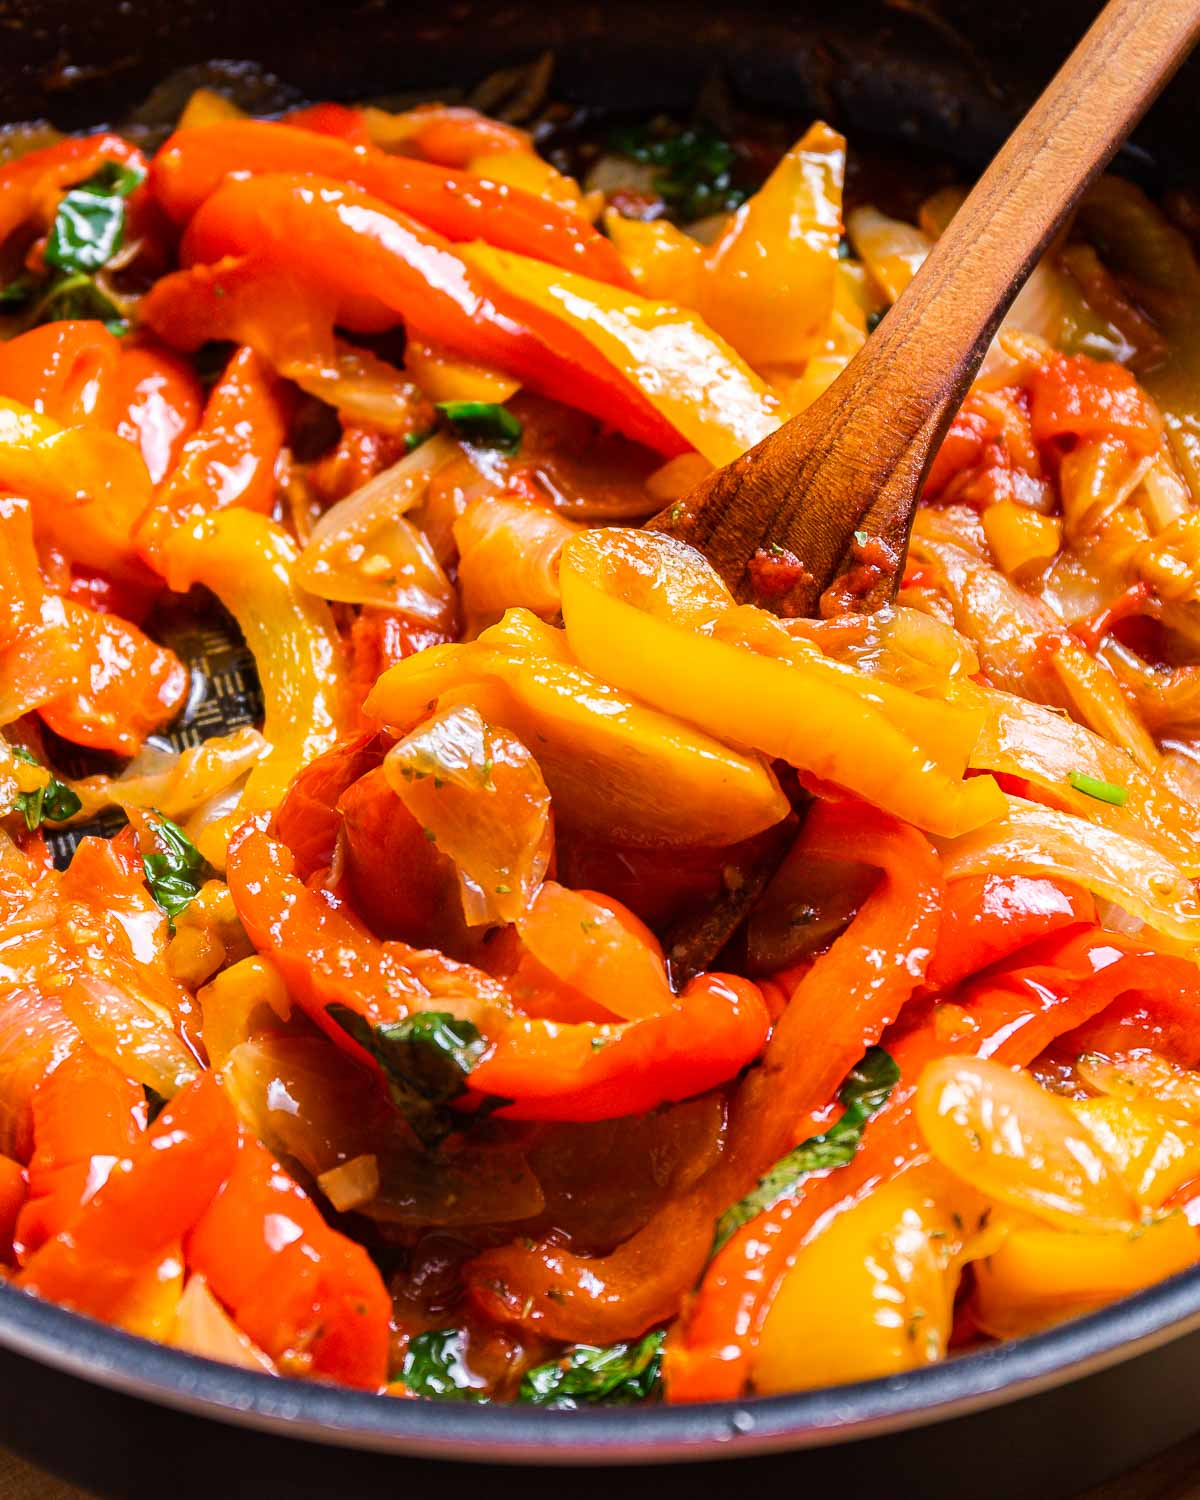 Peppers and onions in black pan with wooden spoon.